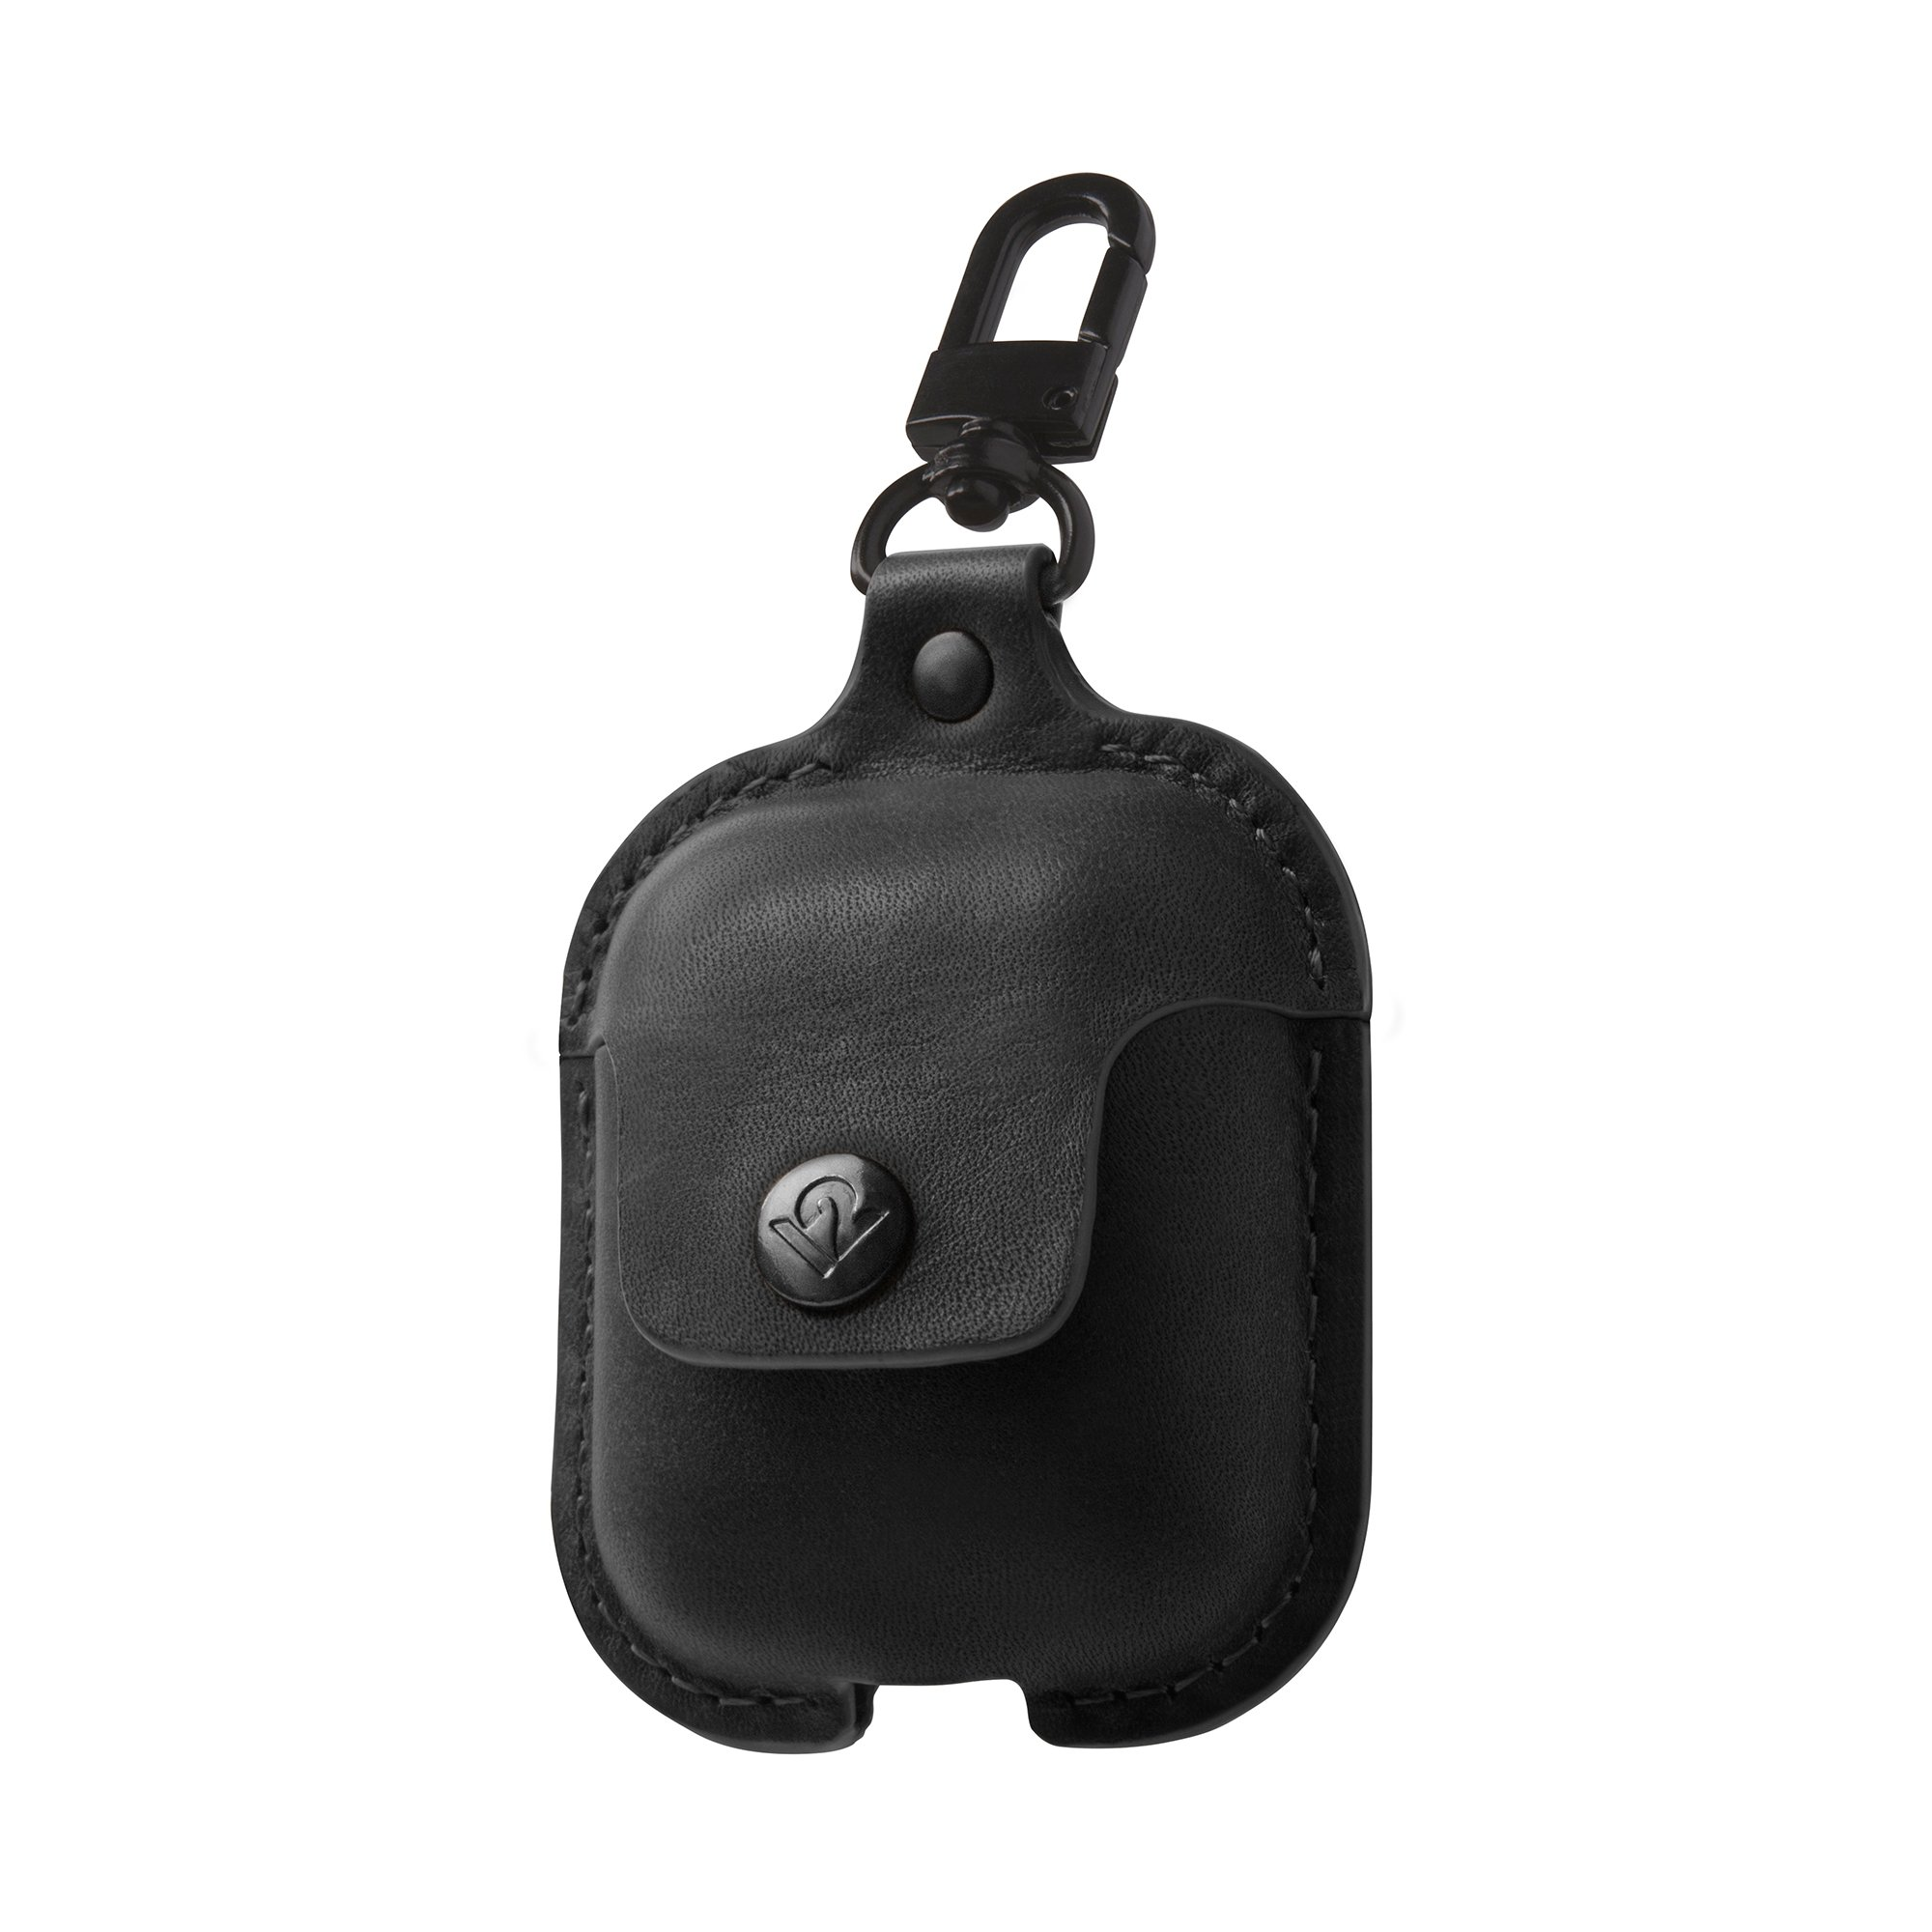 Twelve South AirSnap | Burnished Leather case for AirPods in Black